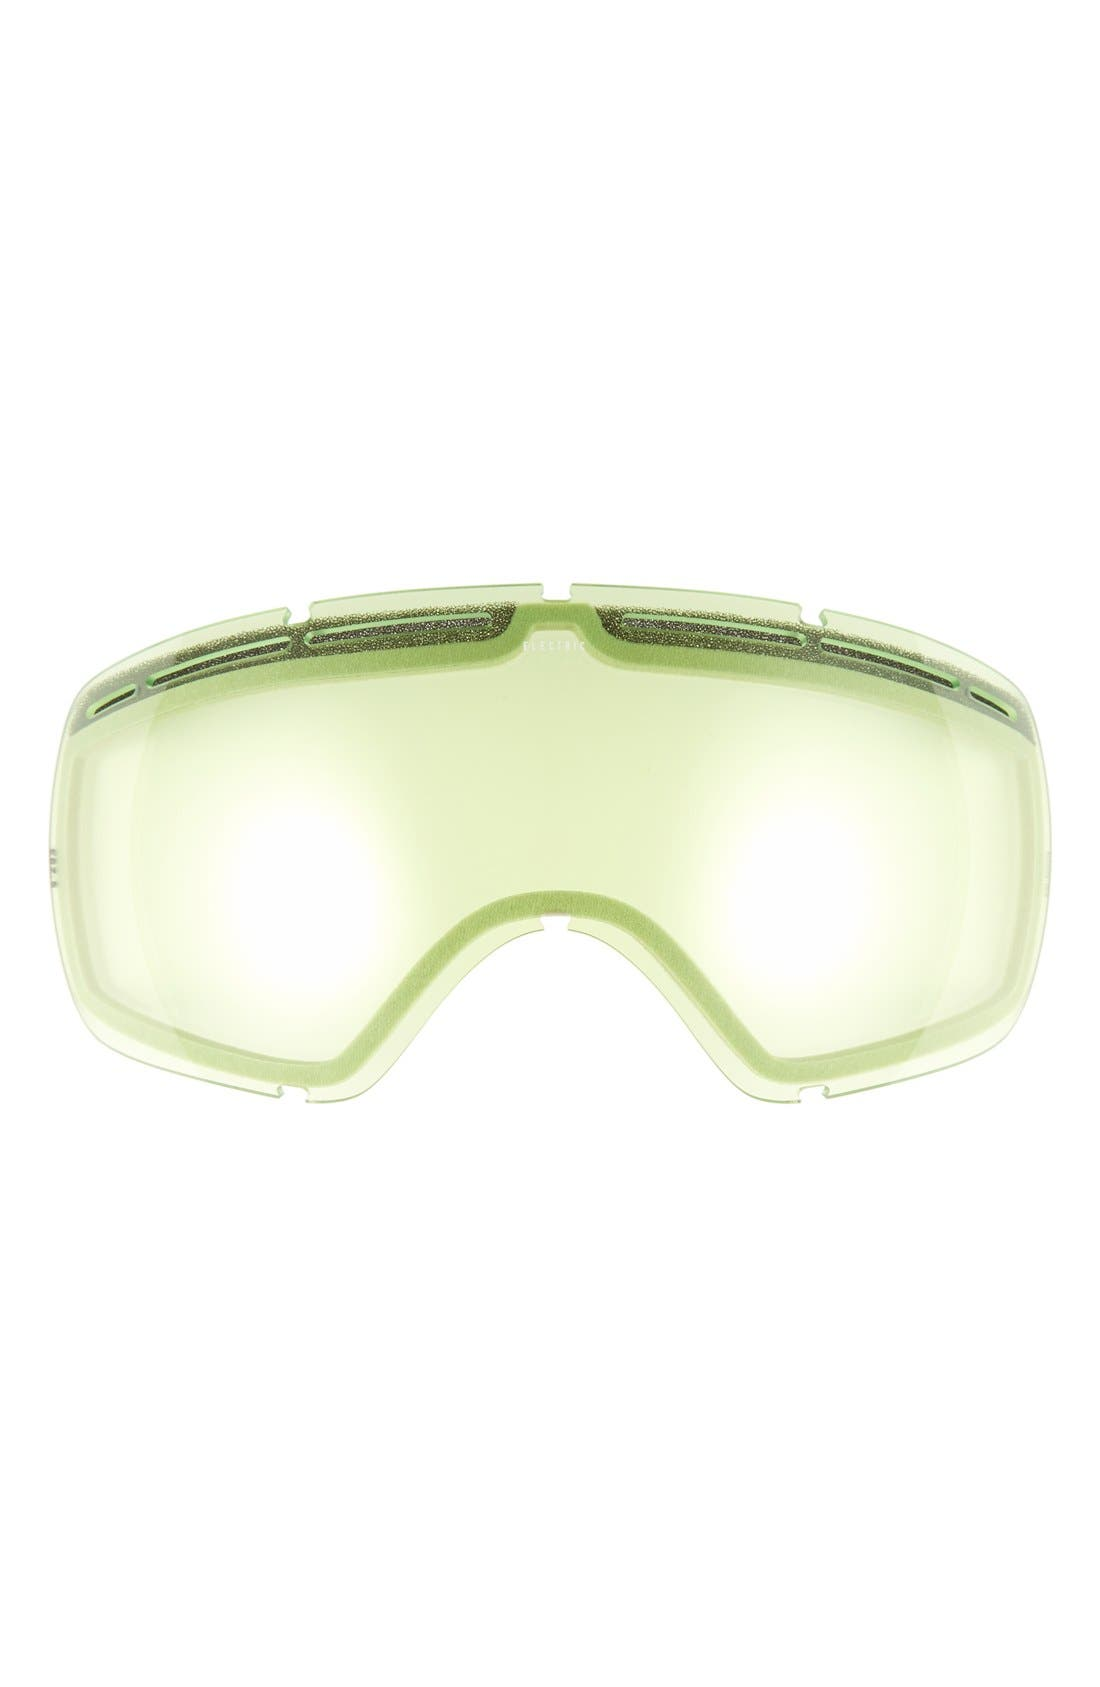 Alternate Image 3  - ELECTRIC EG 2.5 215mm Snow Goggles